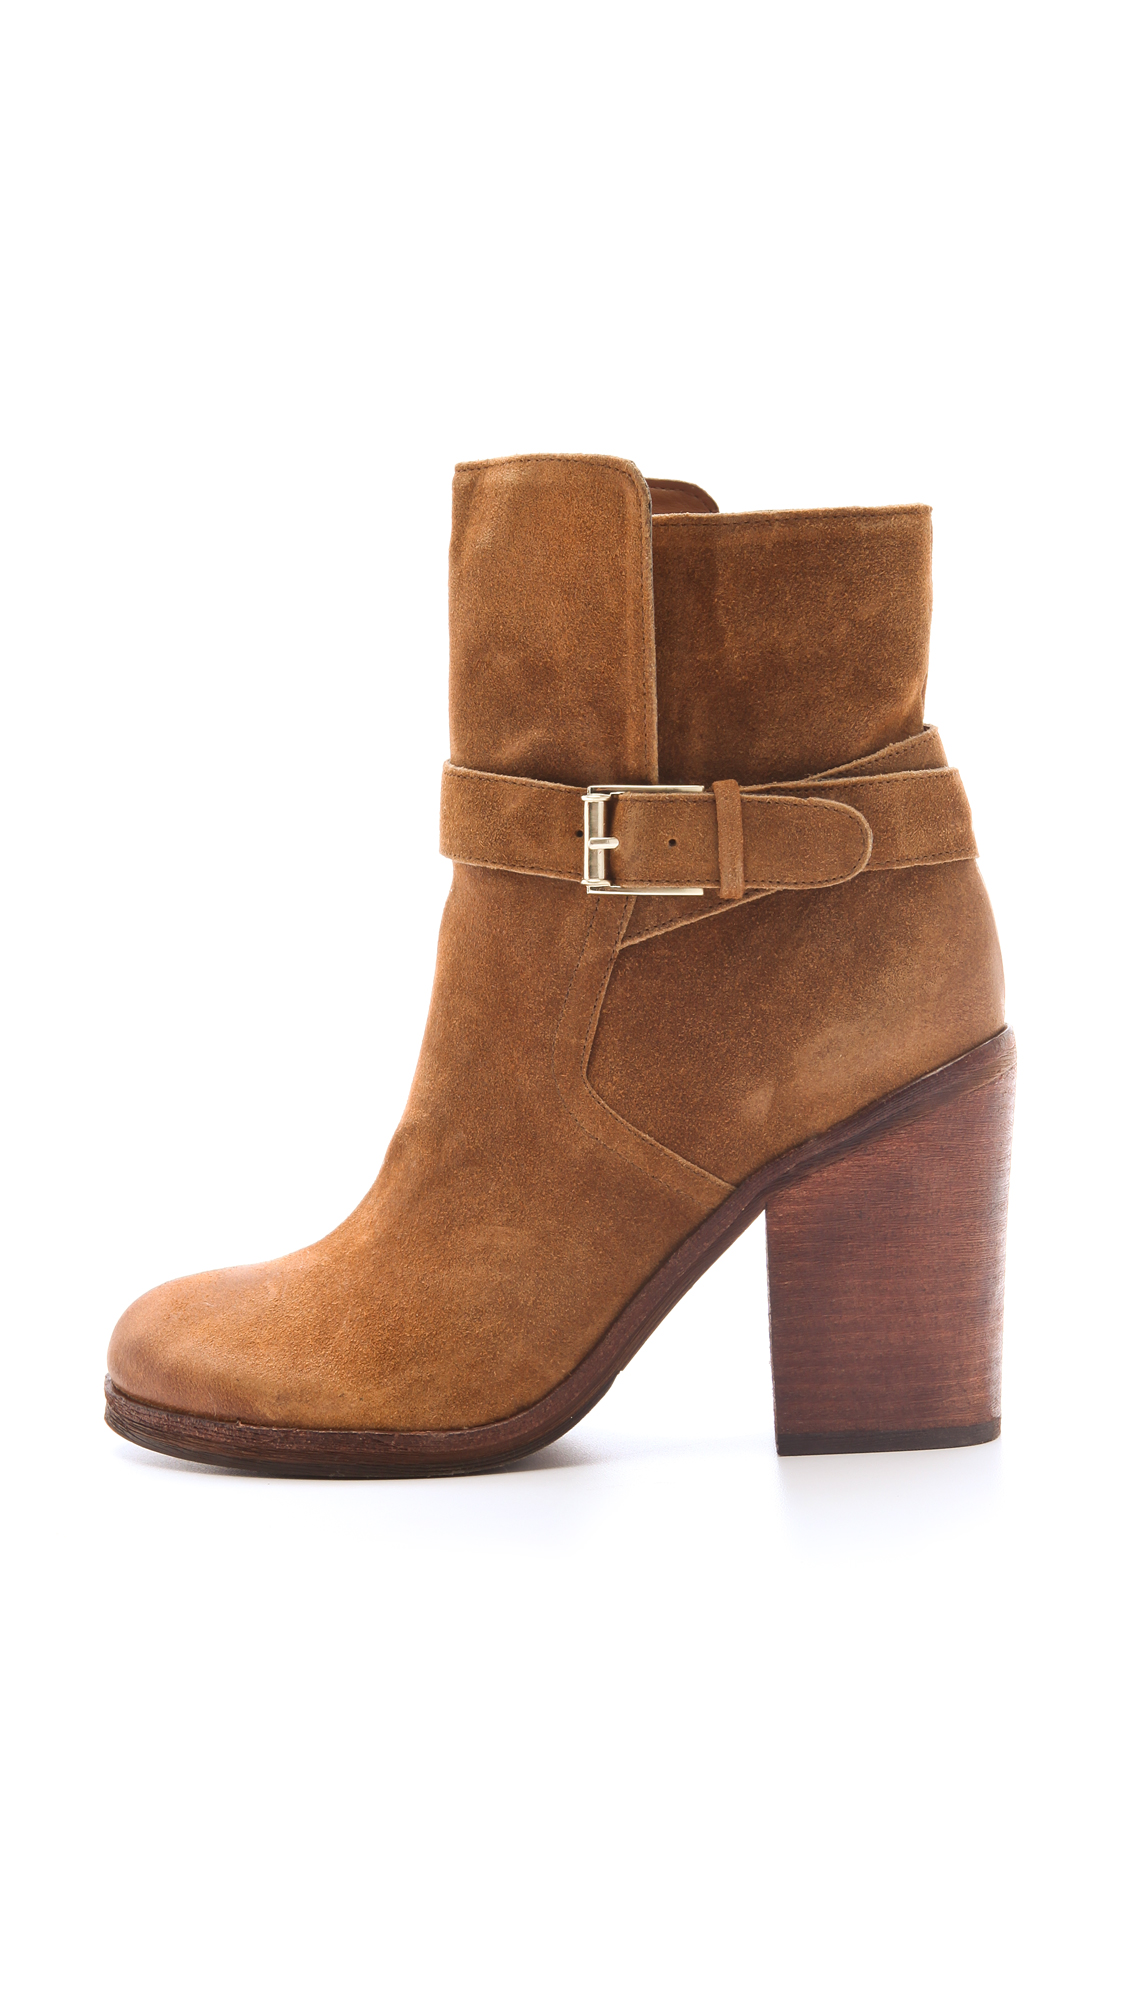 a666be3e1dc143 Lyst - Sam Edelman Perry Wrap Strap Booties in Brown